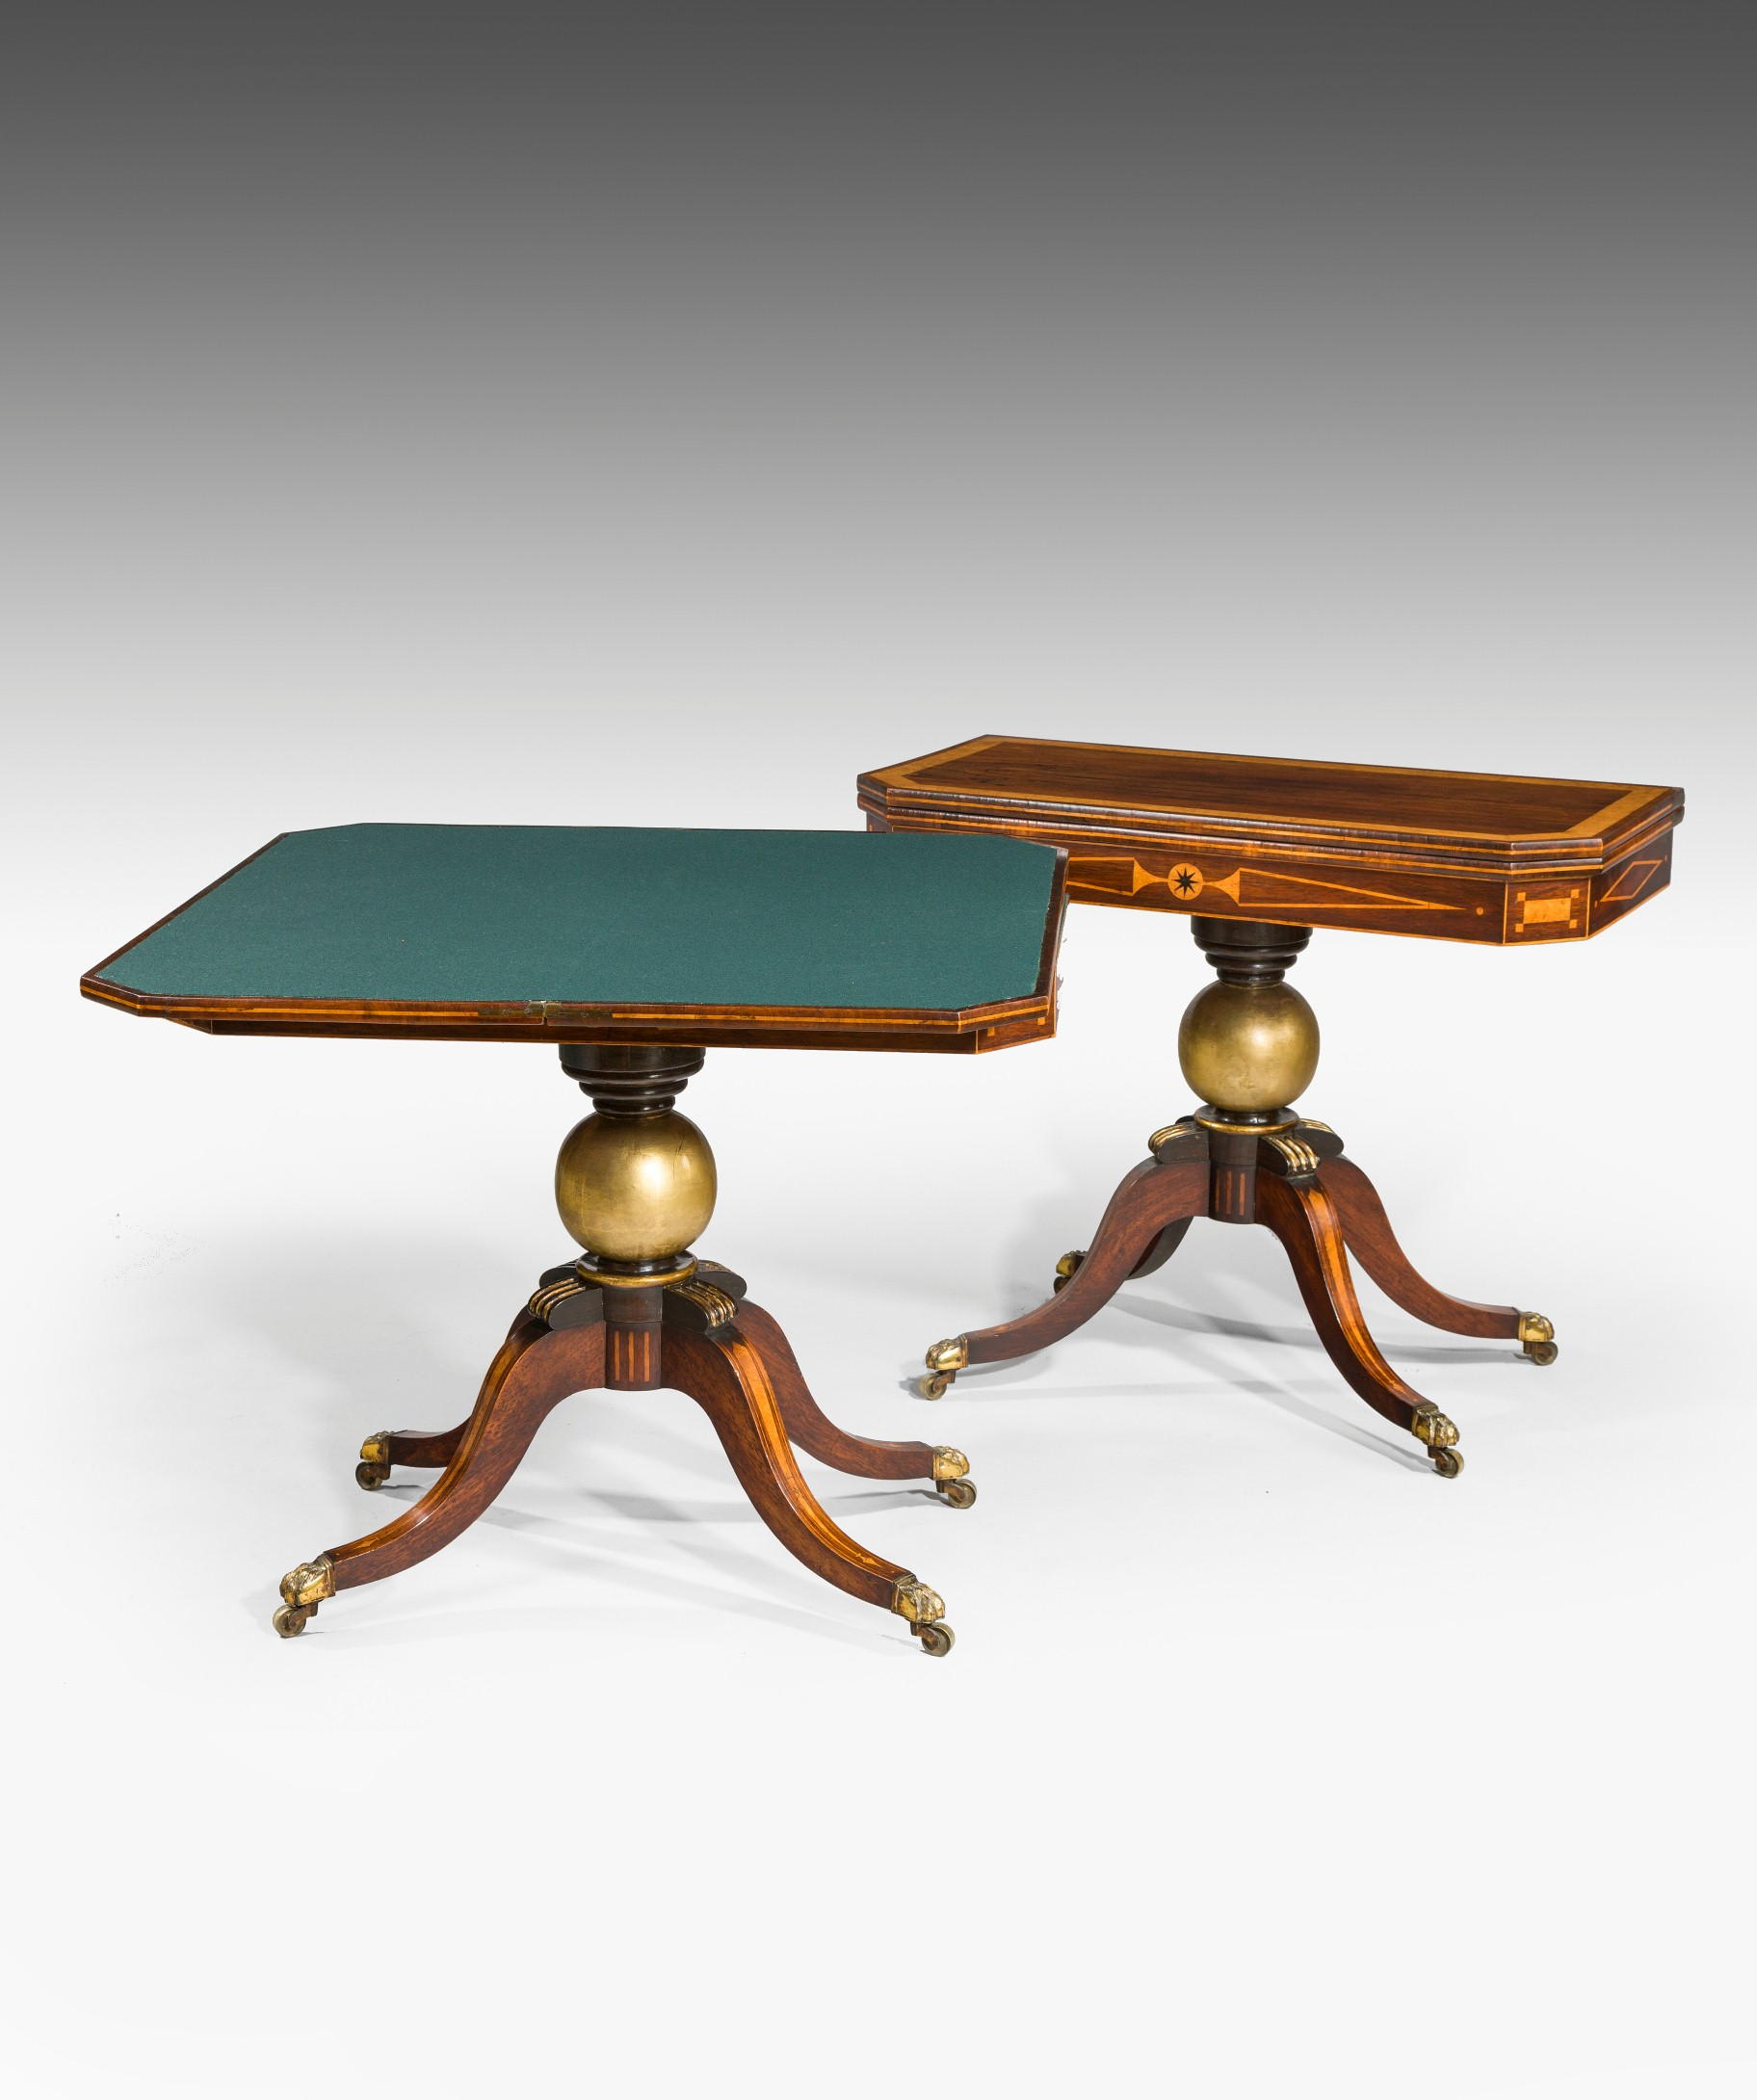 Antique card table regency card table inlaid card table antique -  Card Table Here The Antique Table Rests On A Gilded Ball Stem Terminating In Four Swept Legs Inlaid With Amboyna And Original Lion Paw Casters